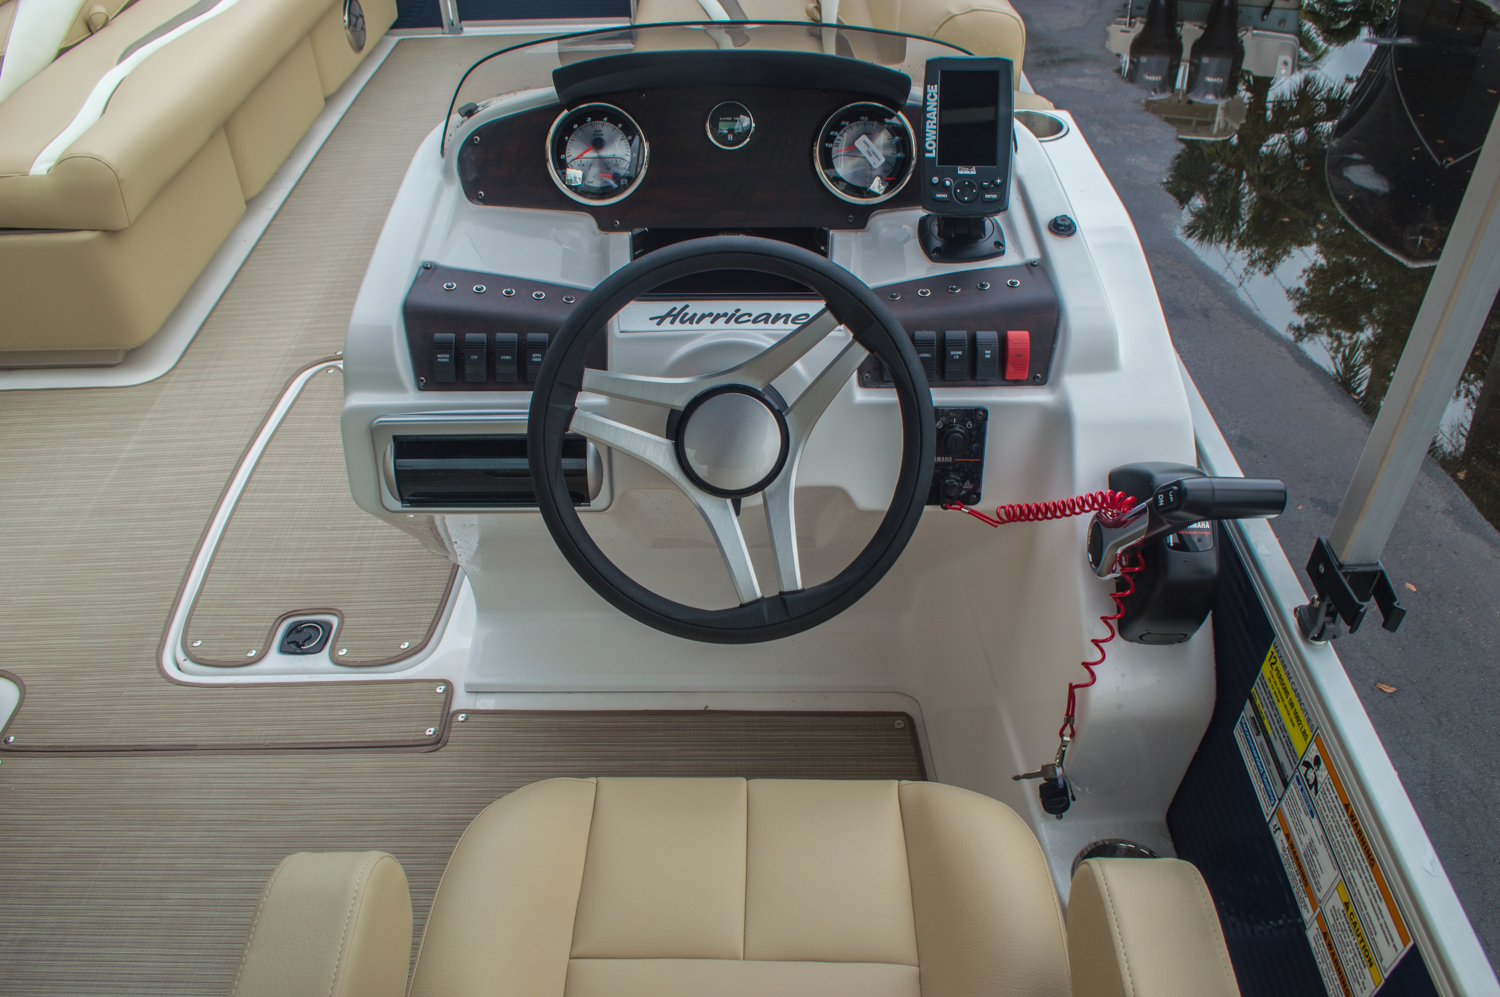 Thumbnail 28 for New 2016 Hurricane FunDeck FD 236 OB boat for sale in Miami, FL